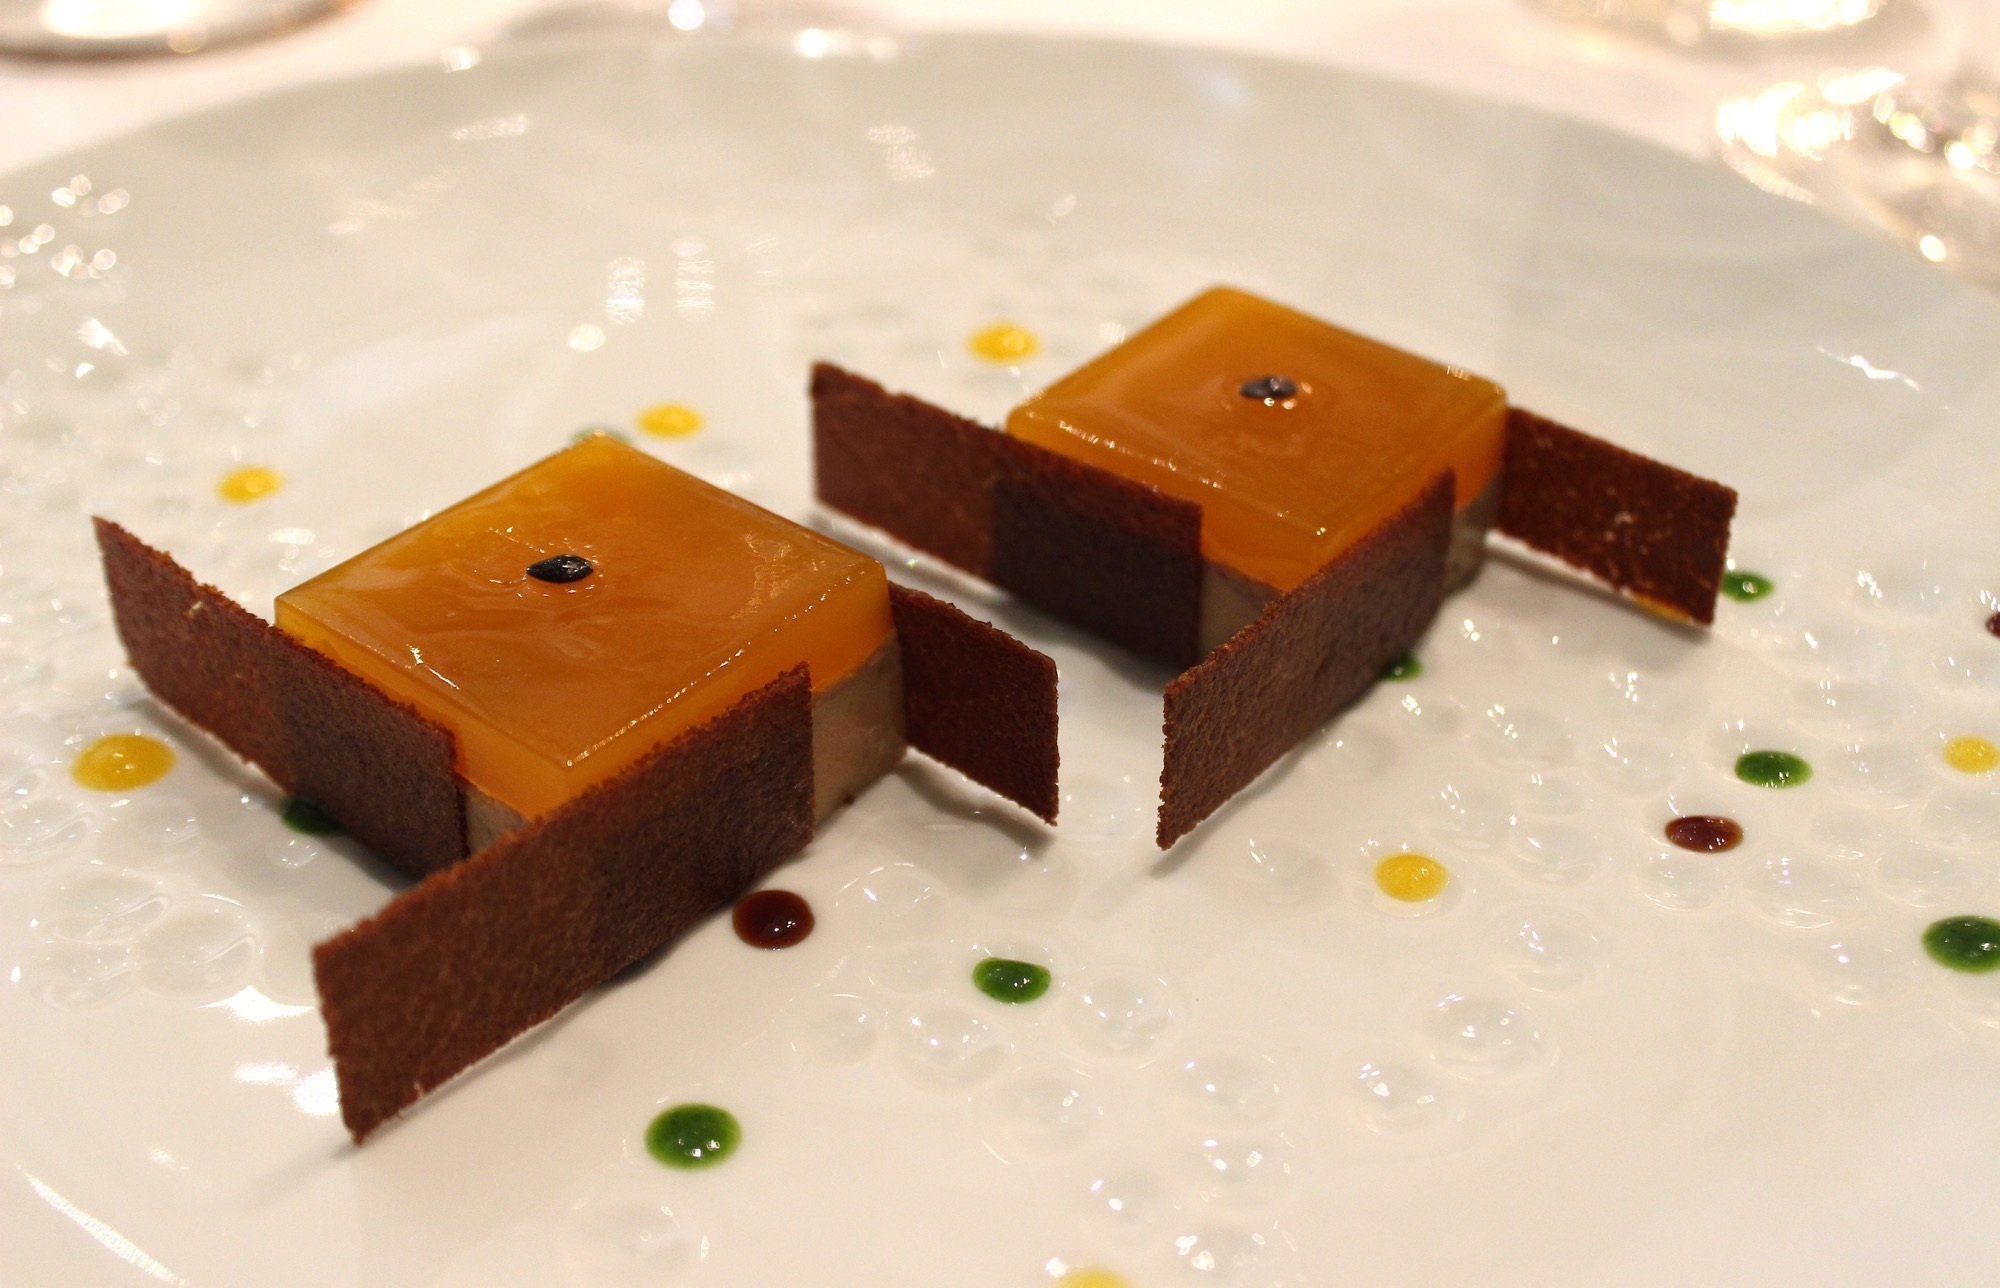 Spicy Foie Gras with Passion Fruit Jelly brewed with Coffee at Le Cinq